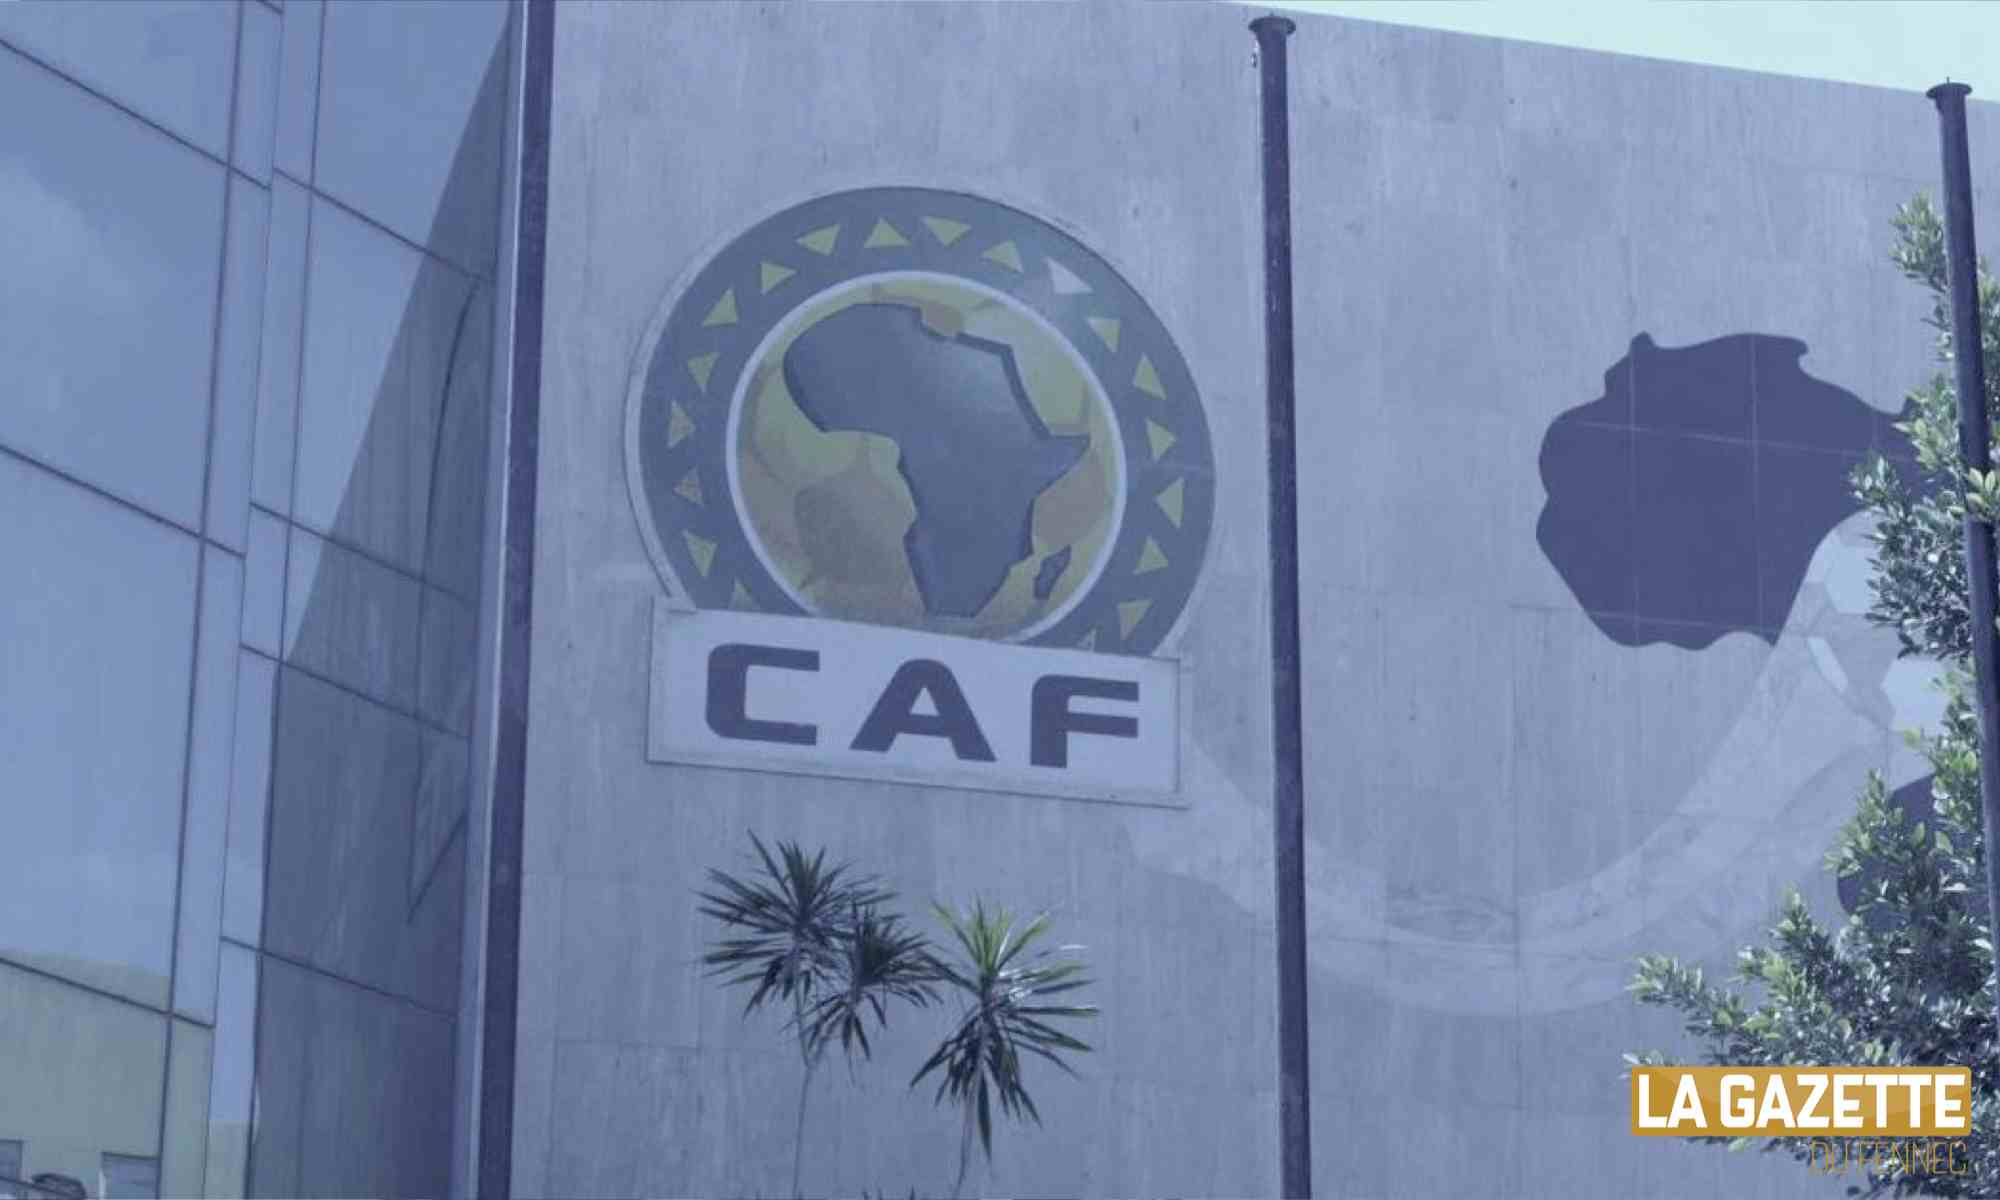 CAF immeuble siege